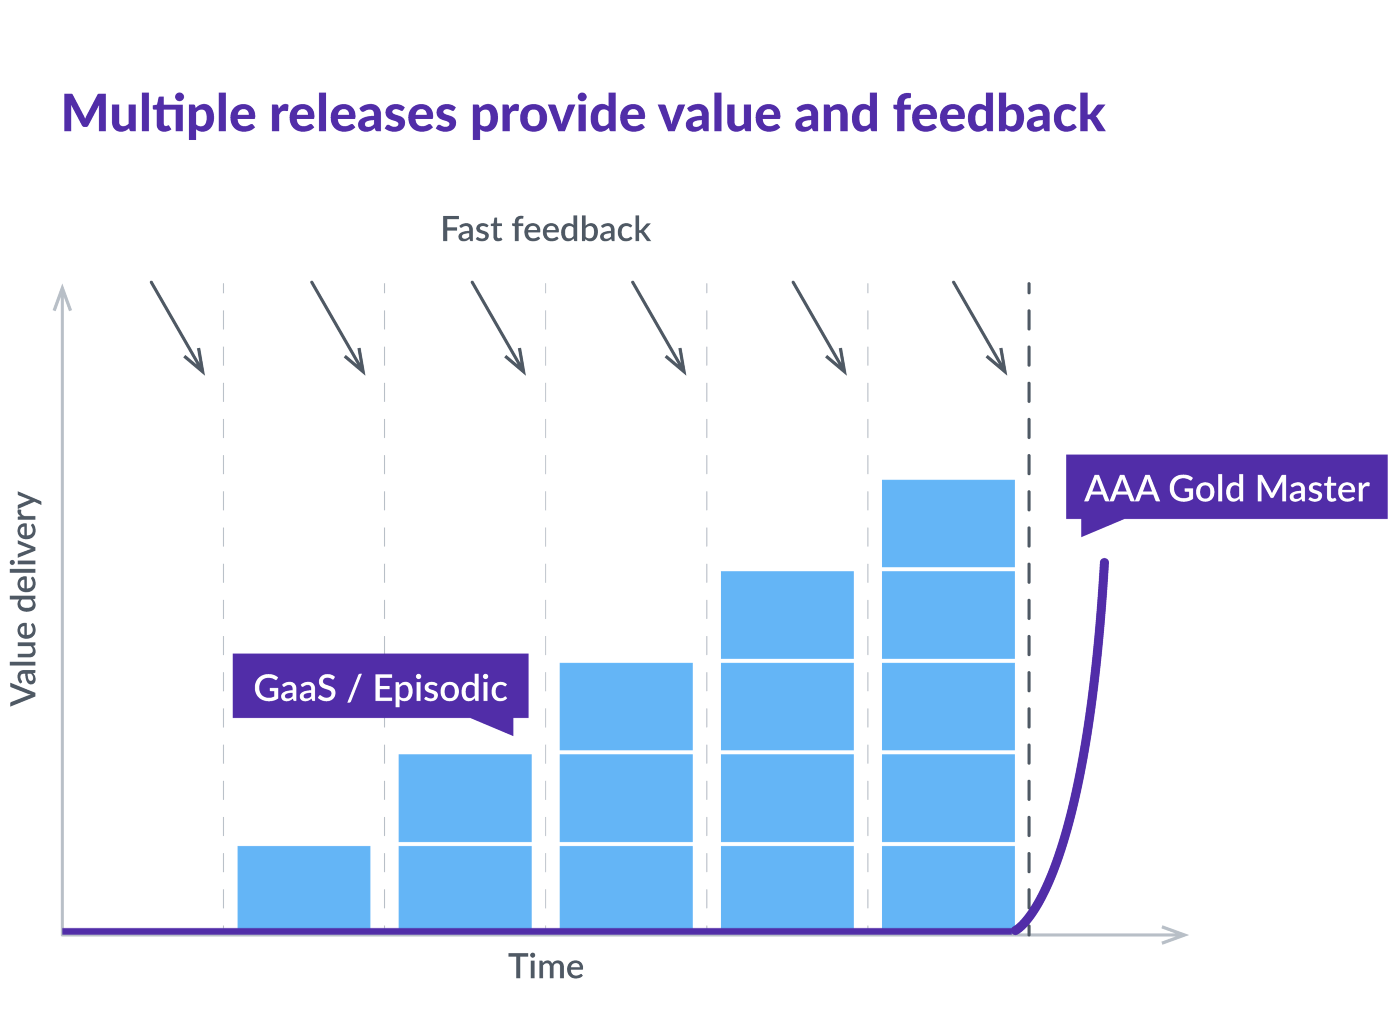 graph describing fast feedback gain from incremental releases